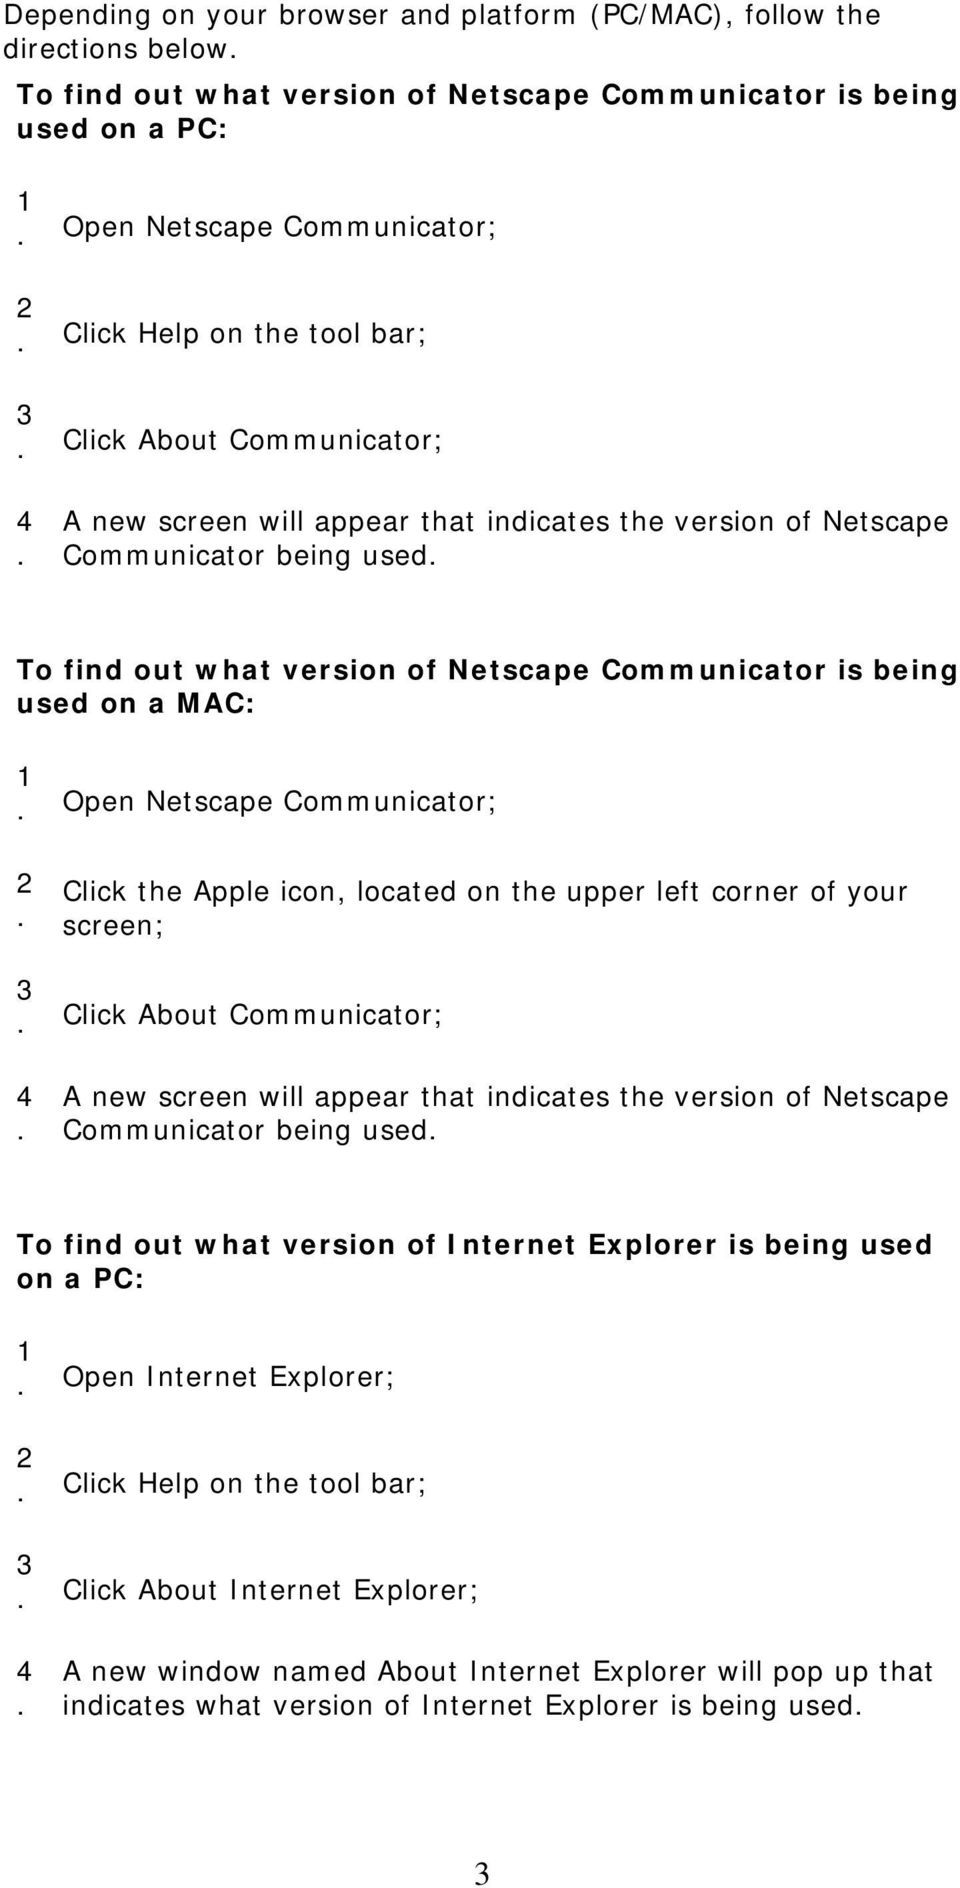 Open Netscape Communicator; Click the Apple icon, located on the upper left corner of your screen; Click About Communicator; A new screen will appear that indicates the version of Netscape